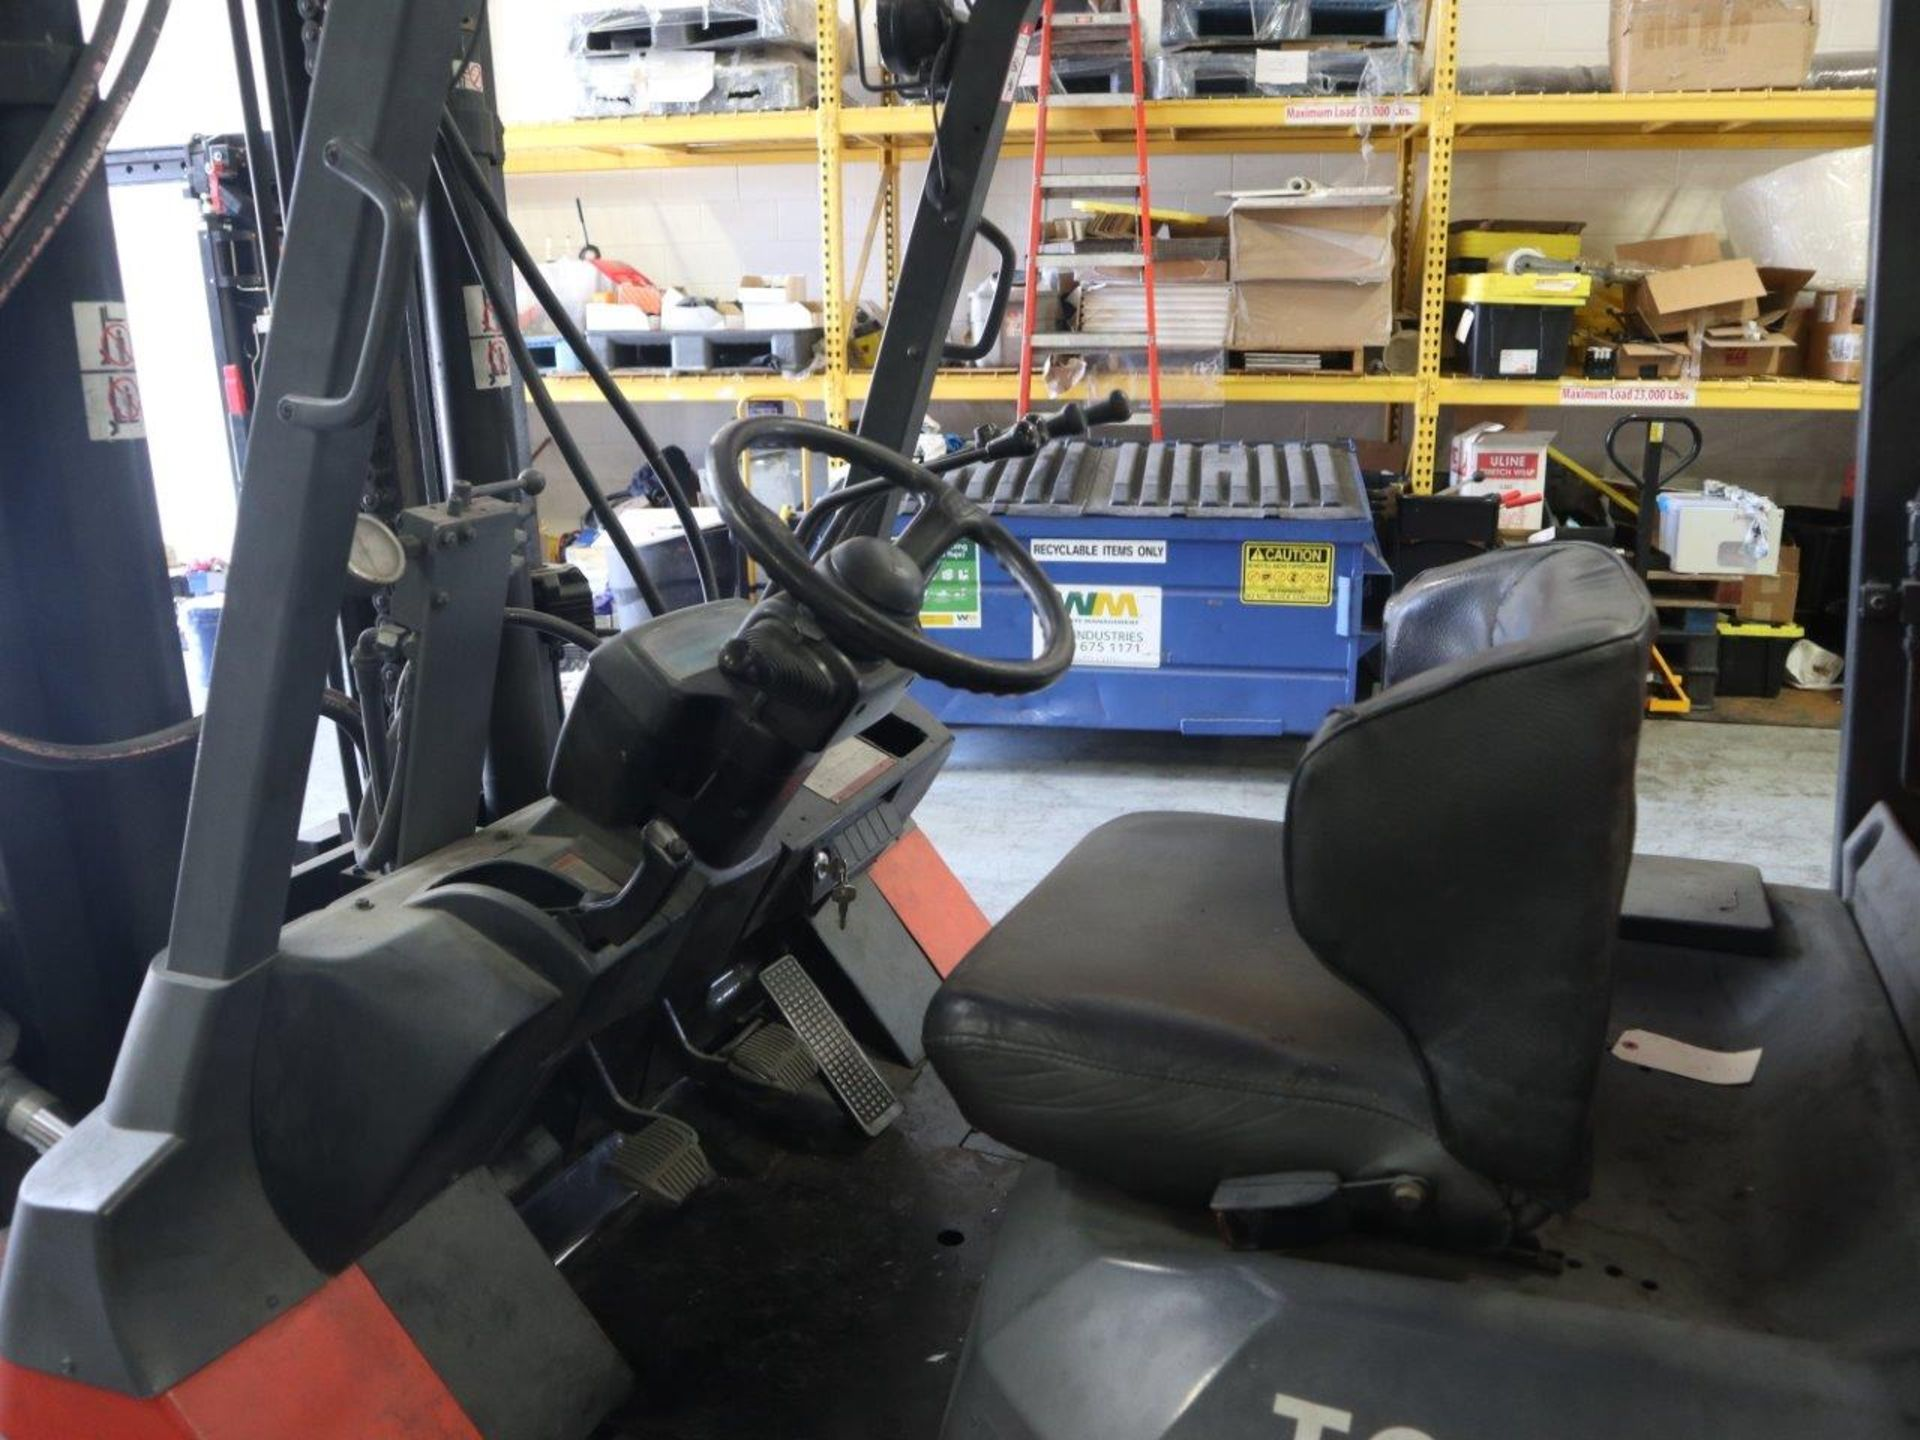 TOYOTA FORKLIFT 15,500 LBS LIFT CAPACITY 7FGCU70 - Image 8 of 8